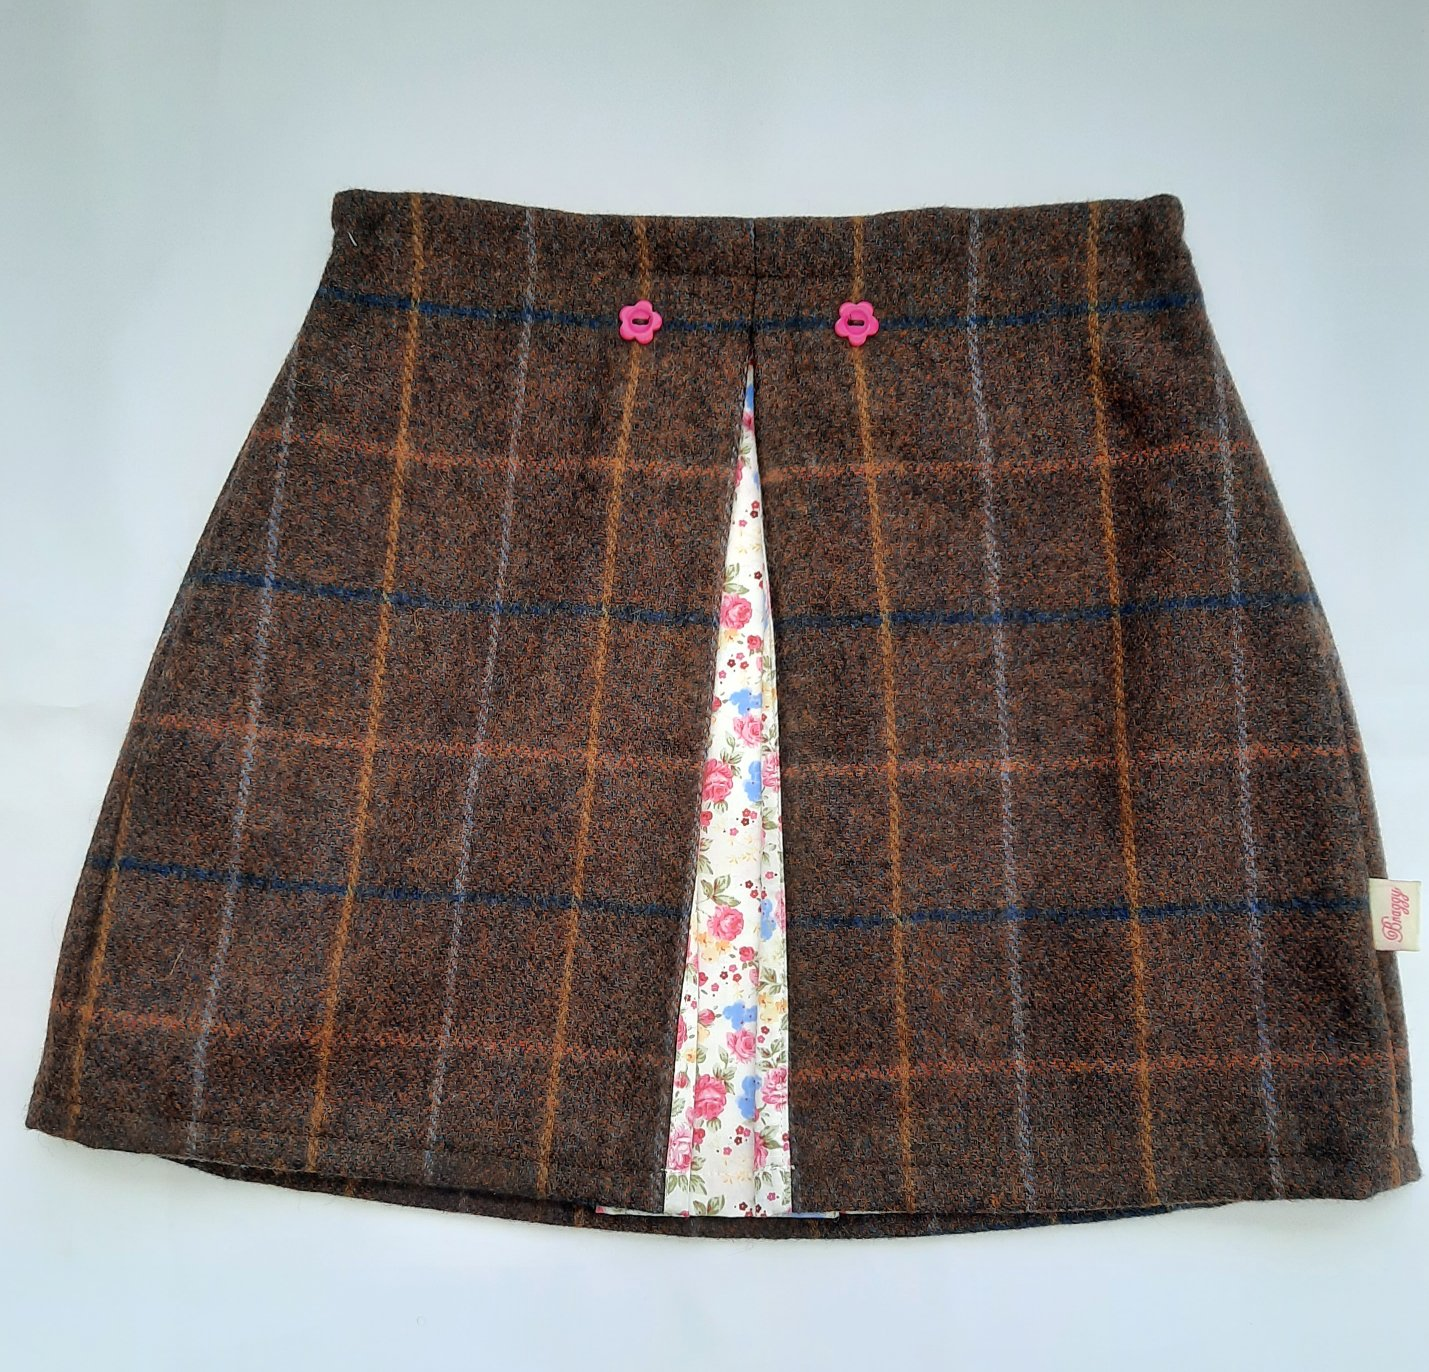 Girl's skirt, 5-6 years